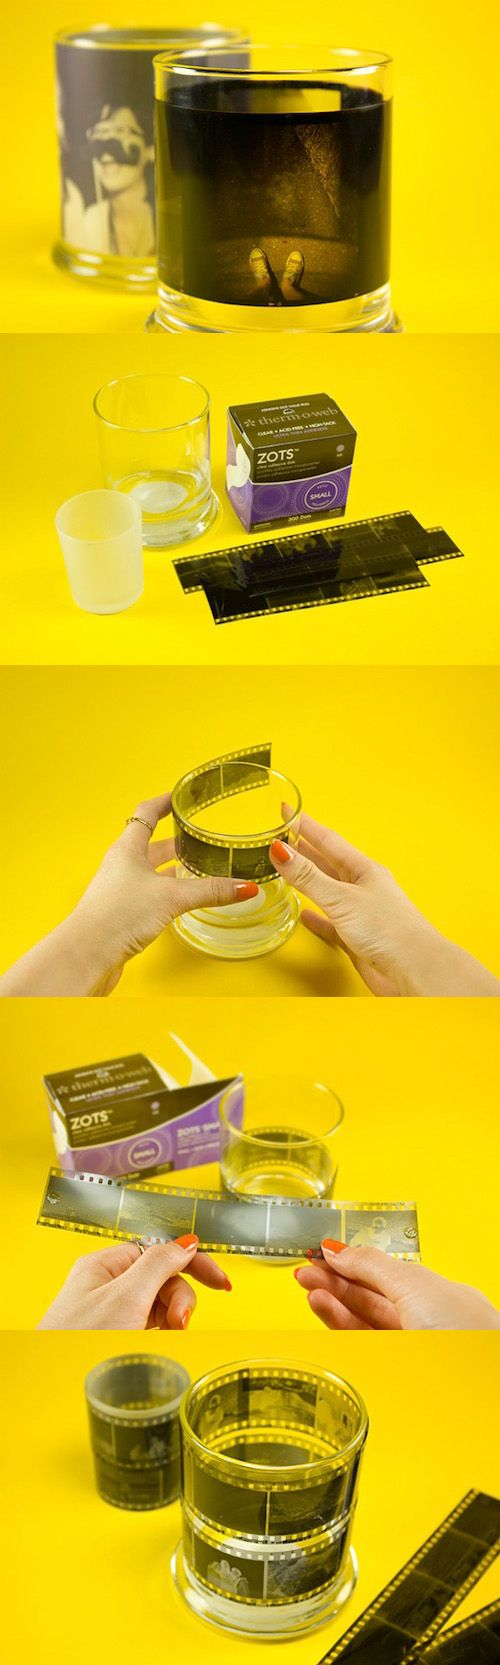 DIY alert! Make a film candle votive that throws pictures made of light in just 3 easy steps! Click through for detailed instructions.